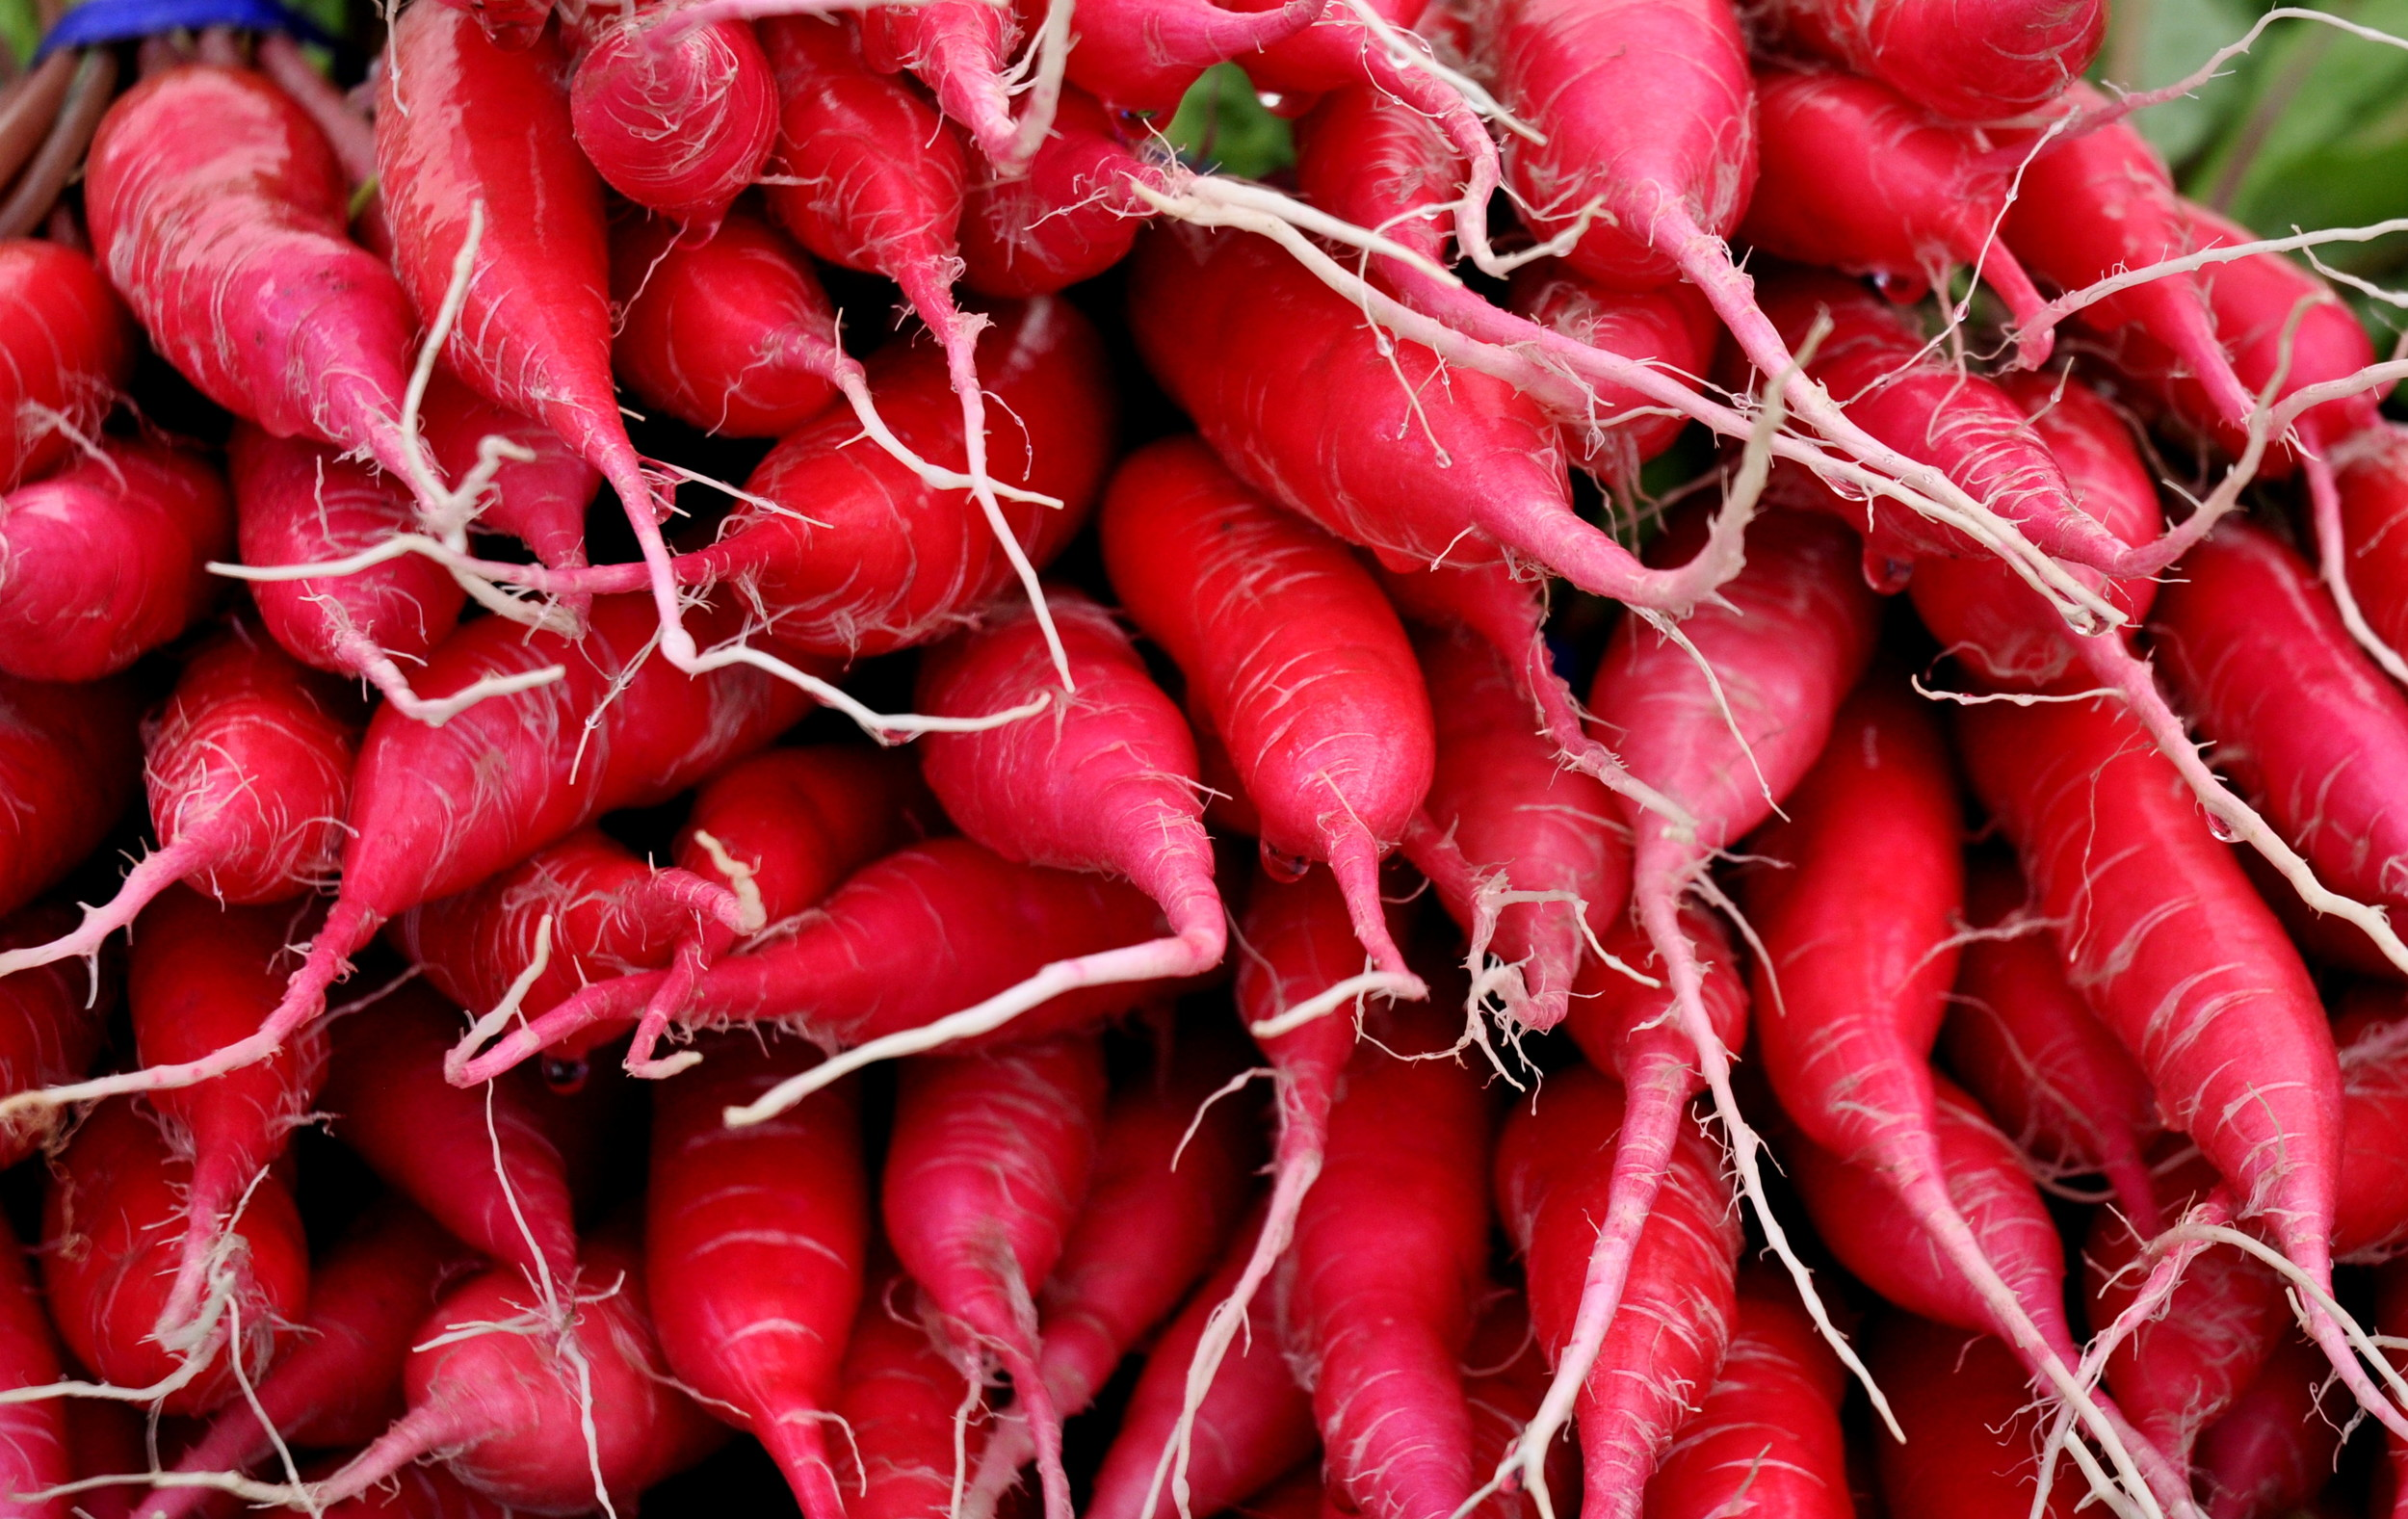 Shunkyo radishes from One Leaf Farm. Photo copyright 2013 by Zachary D. Lyons.